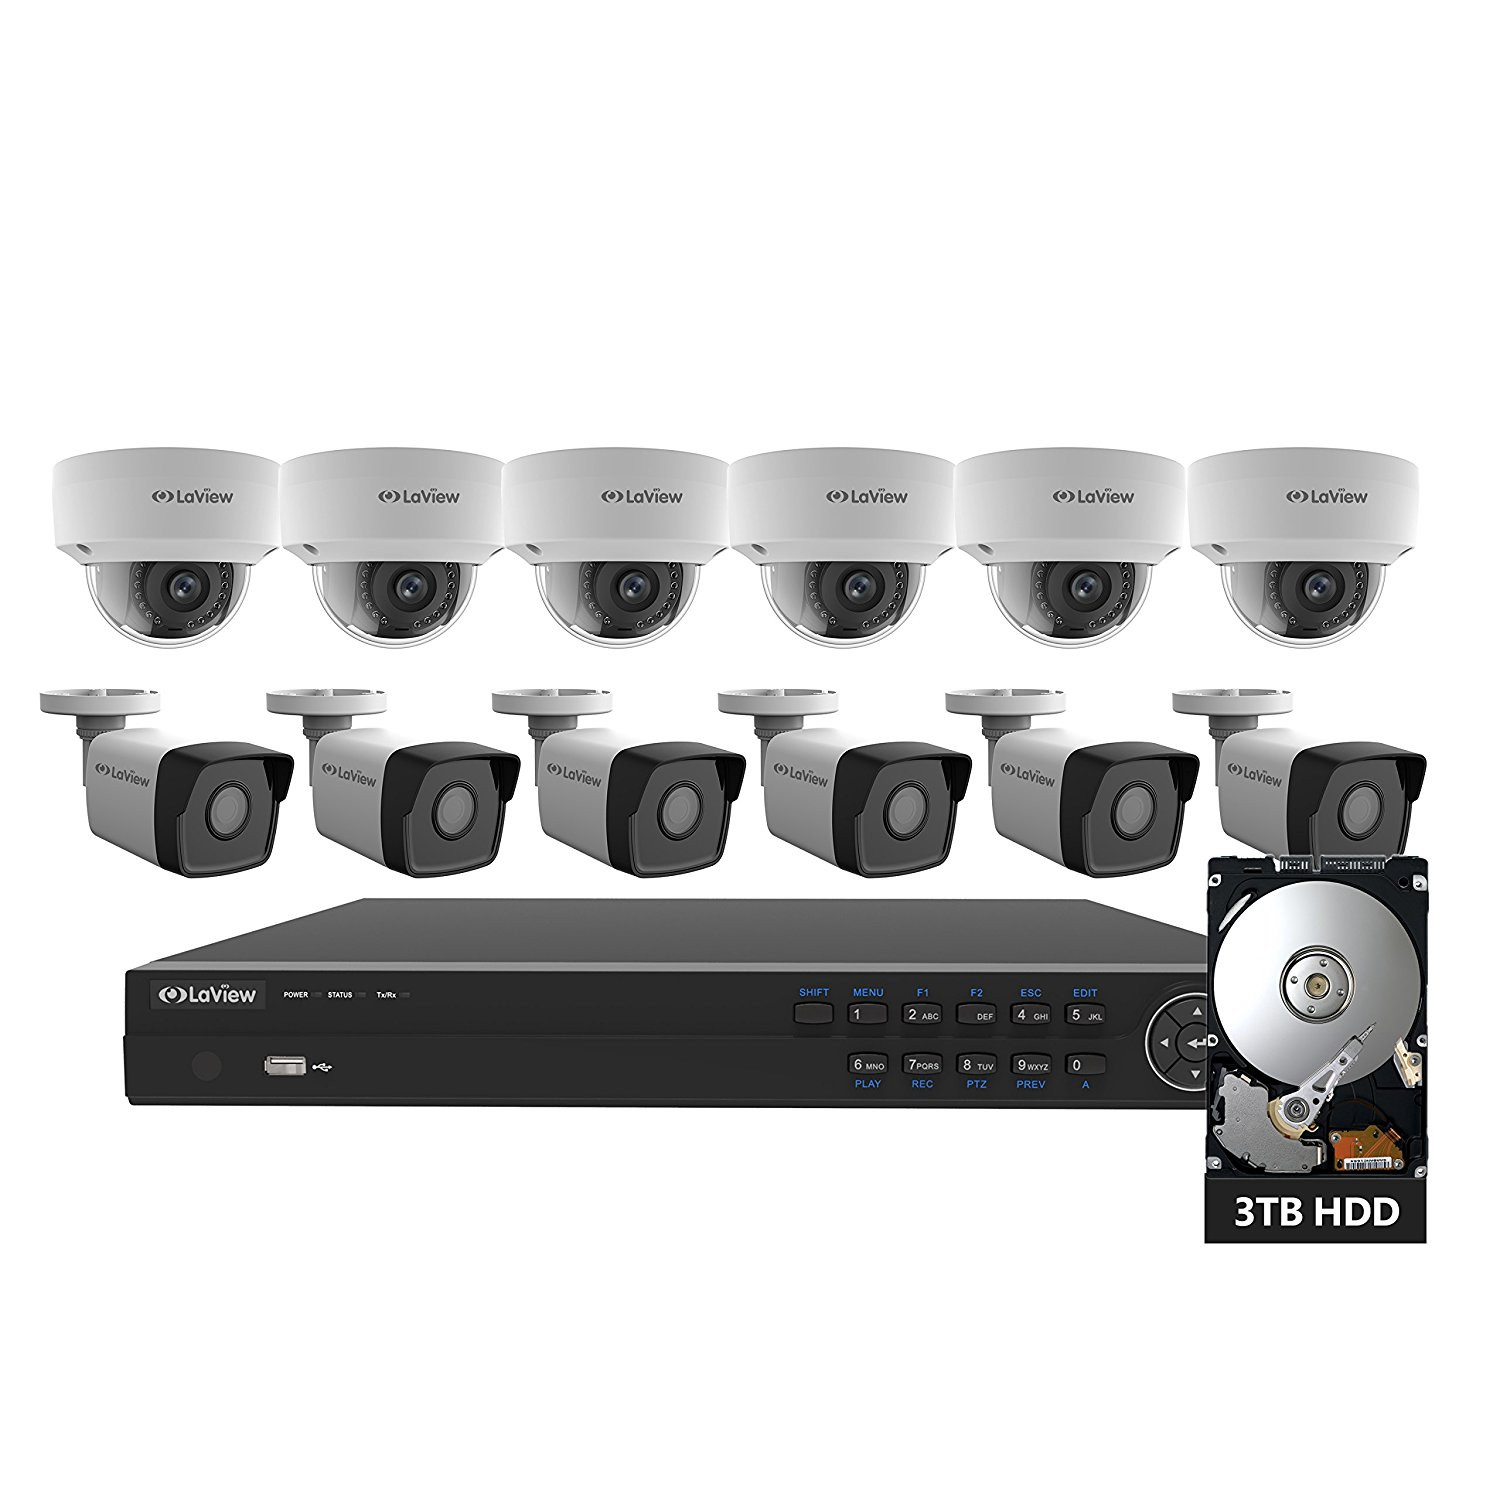 LaView 16 Channel PoE Home Security Camera System NVR 3TB HDD with Indoor and Outdoor Weatherproof HD 4MP Surveillance IP Cameras, 100ft IR Night Vision